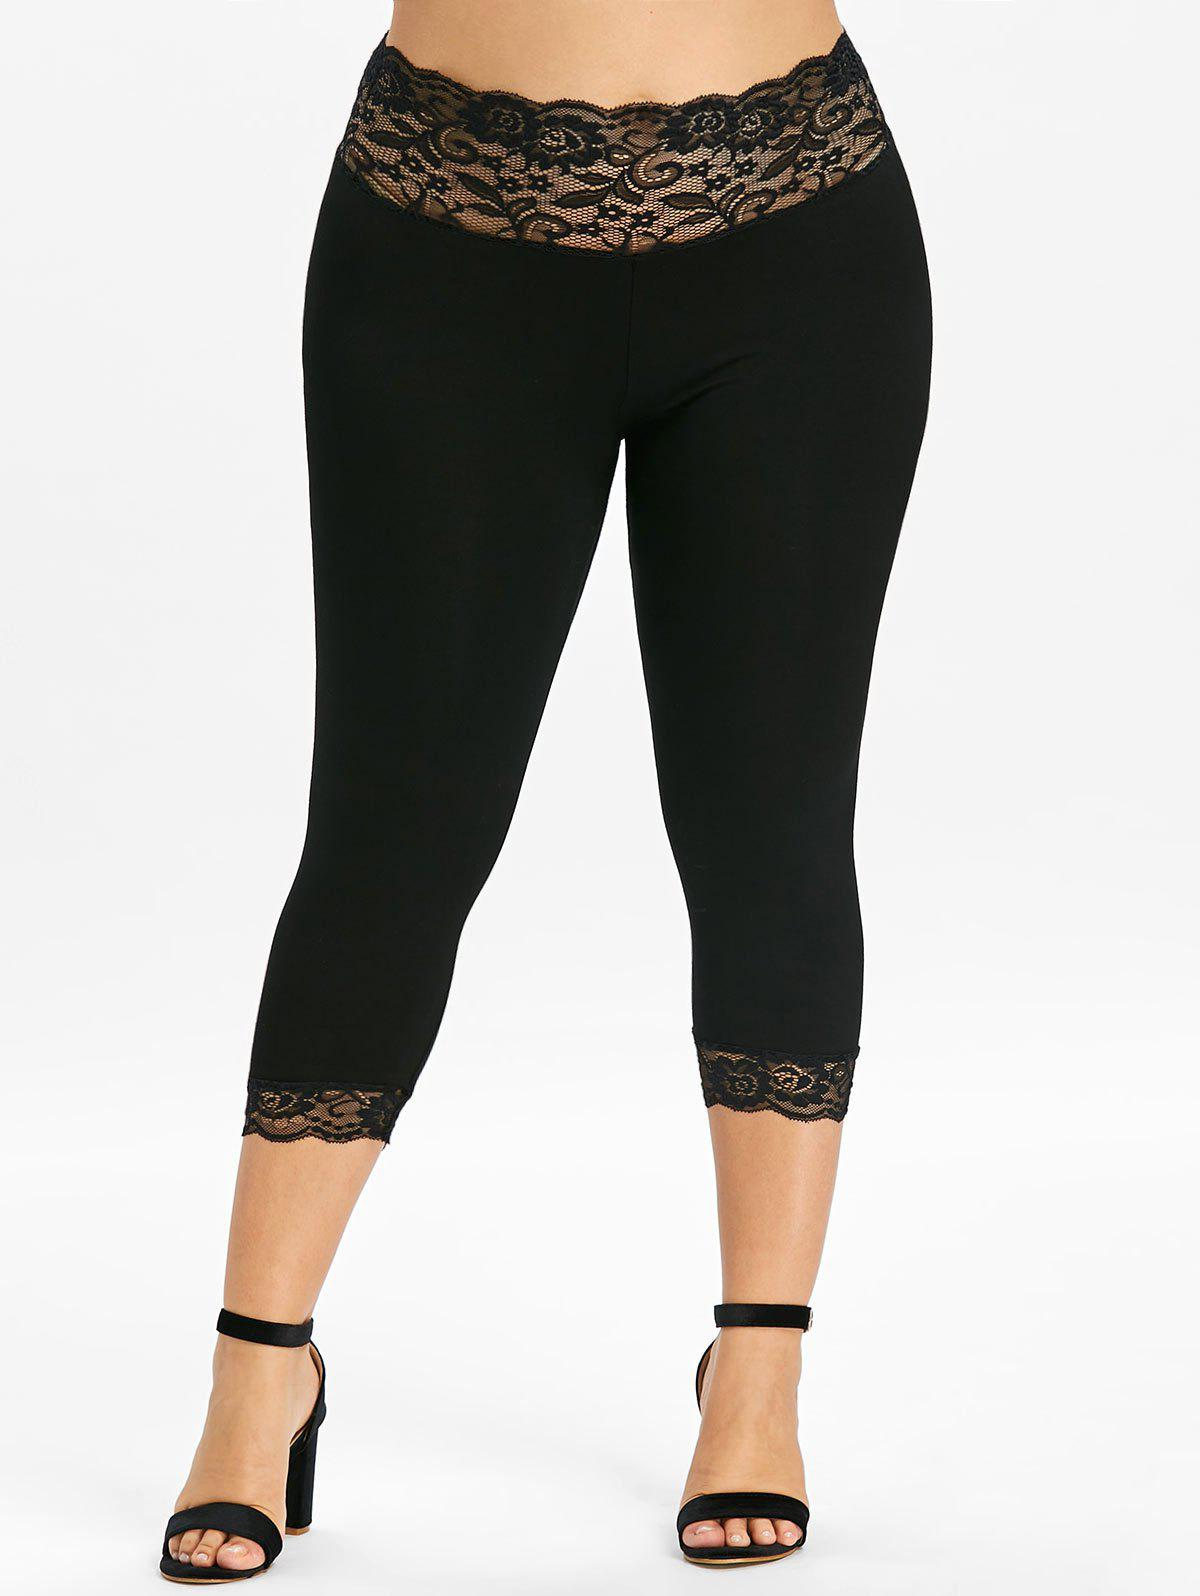 Plus Size Lace Panel Scalloped Capri Leggings - BLACK 1X